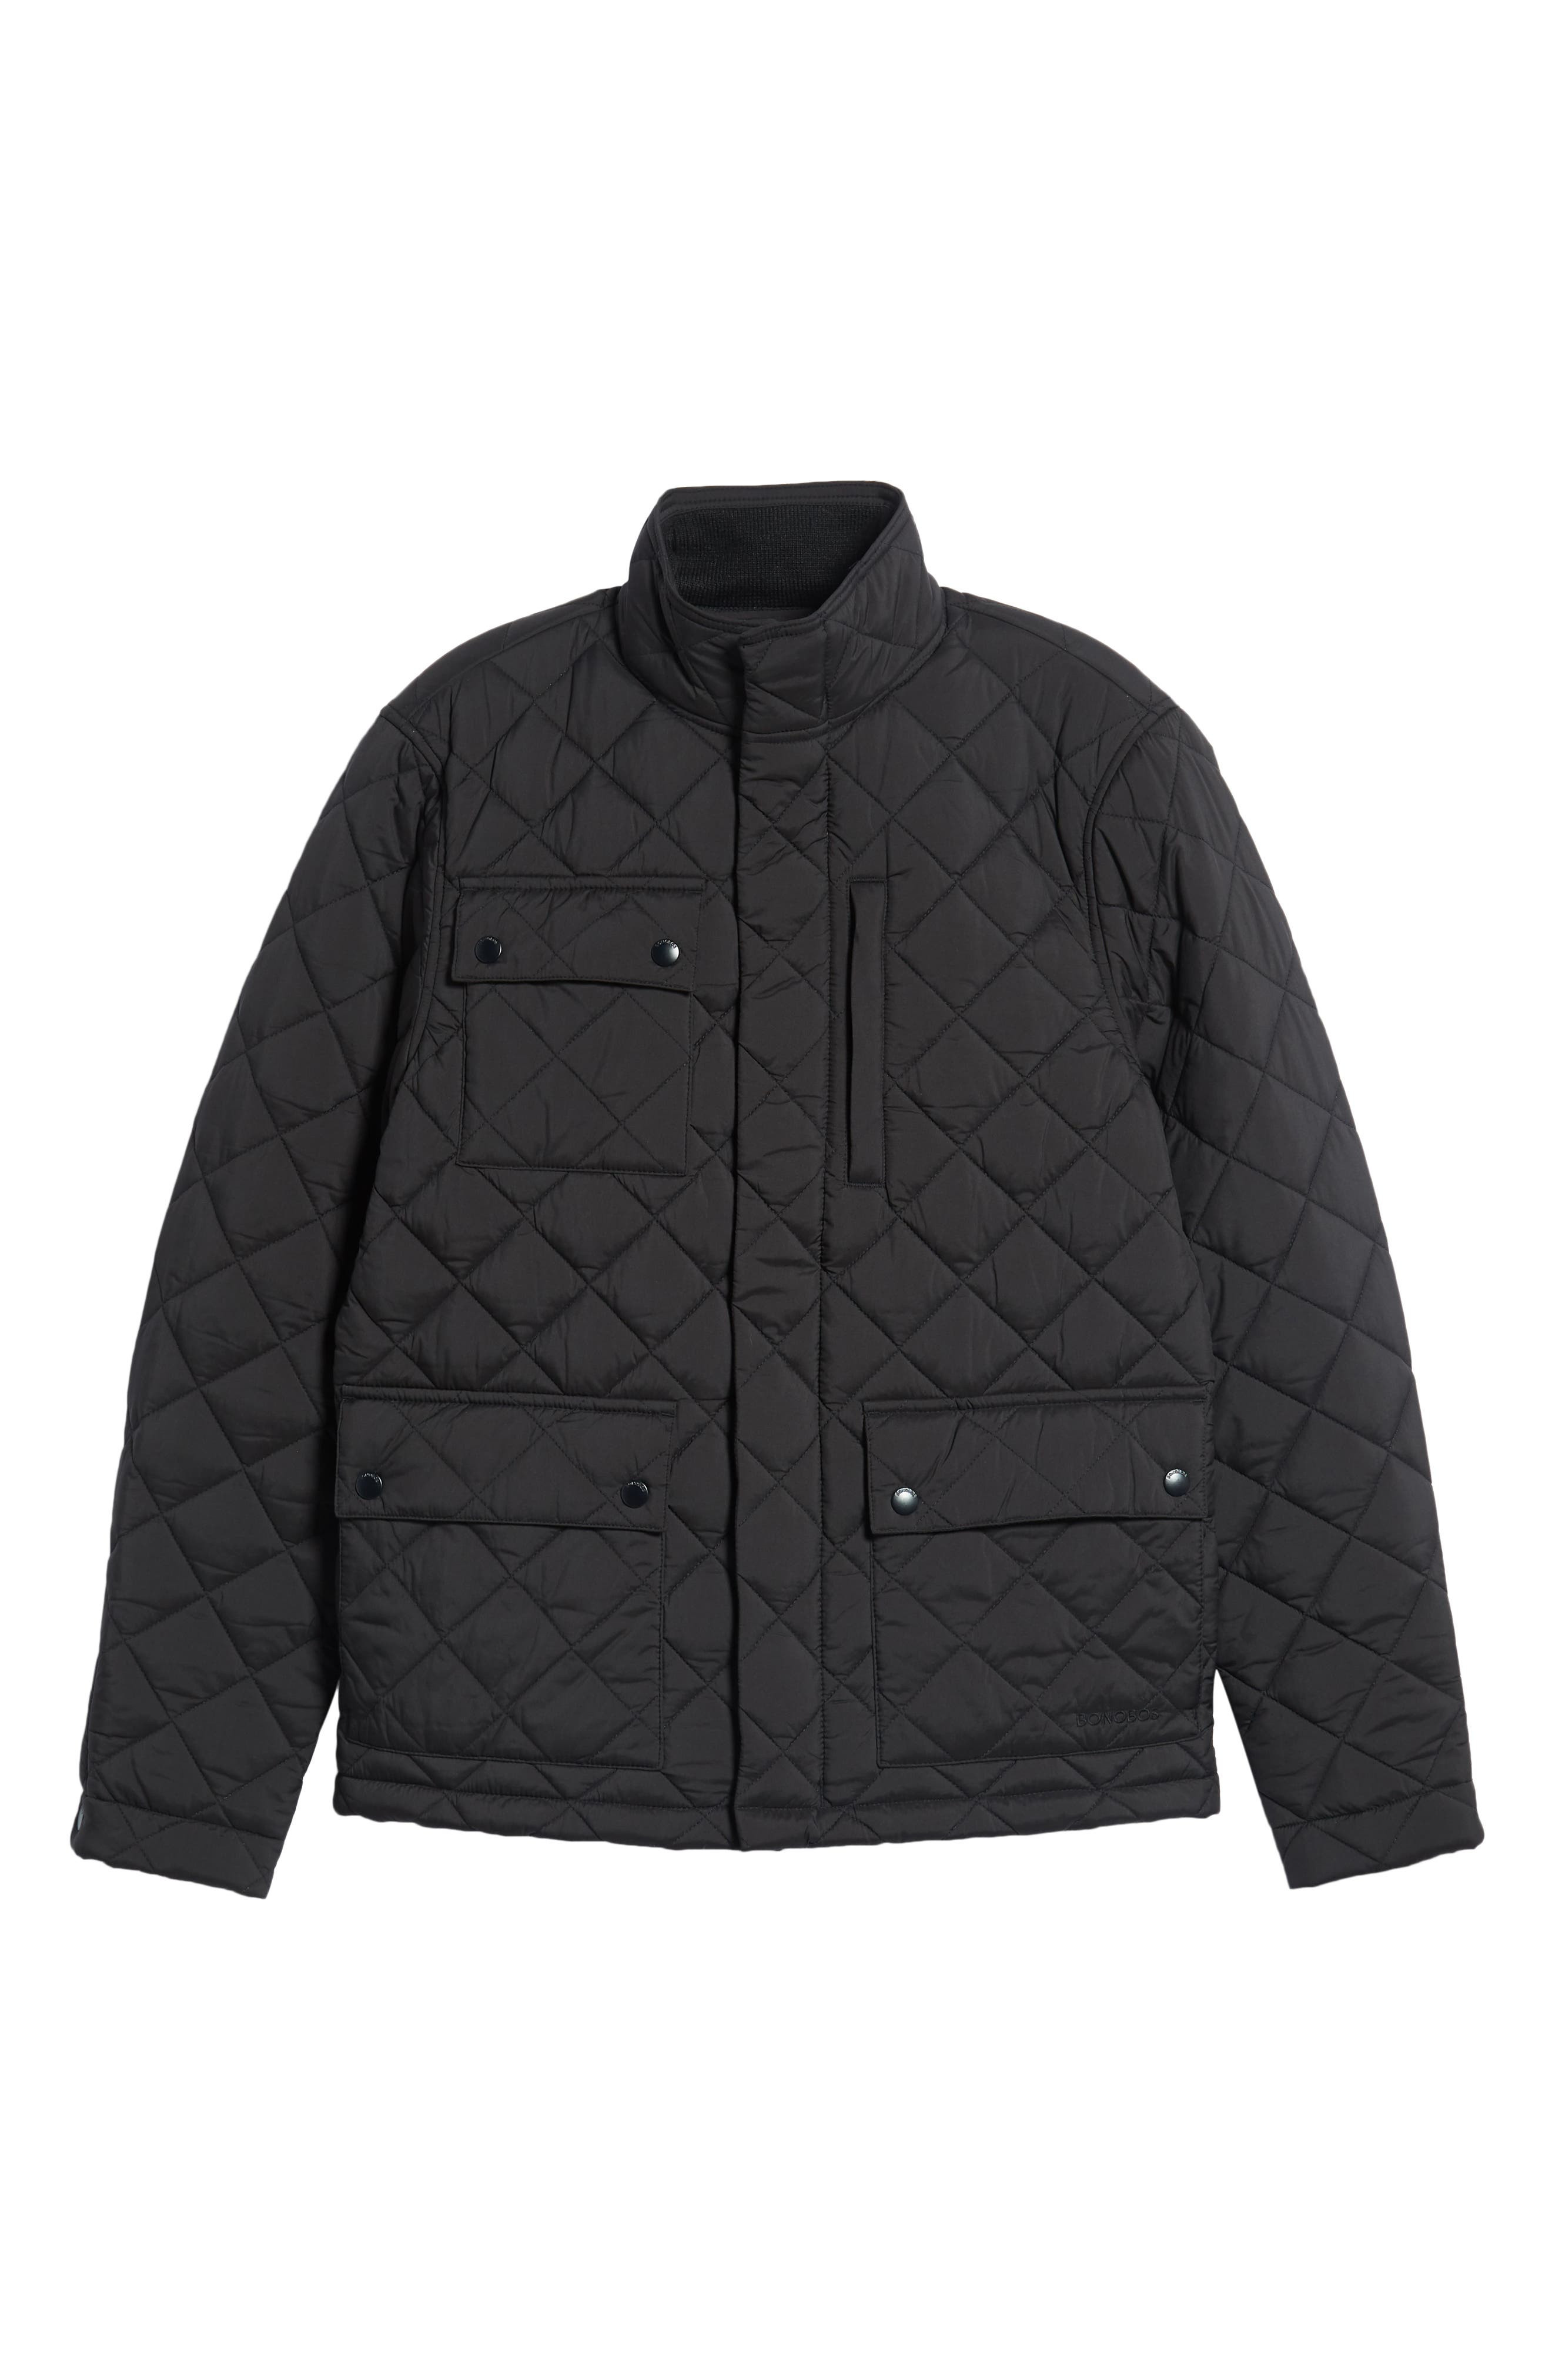 Banff Quilted Jacket,                             Alternate thumbnail 5, color,                             BLACK